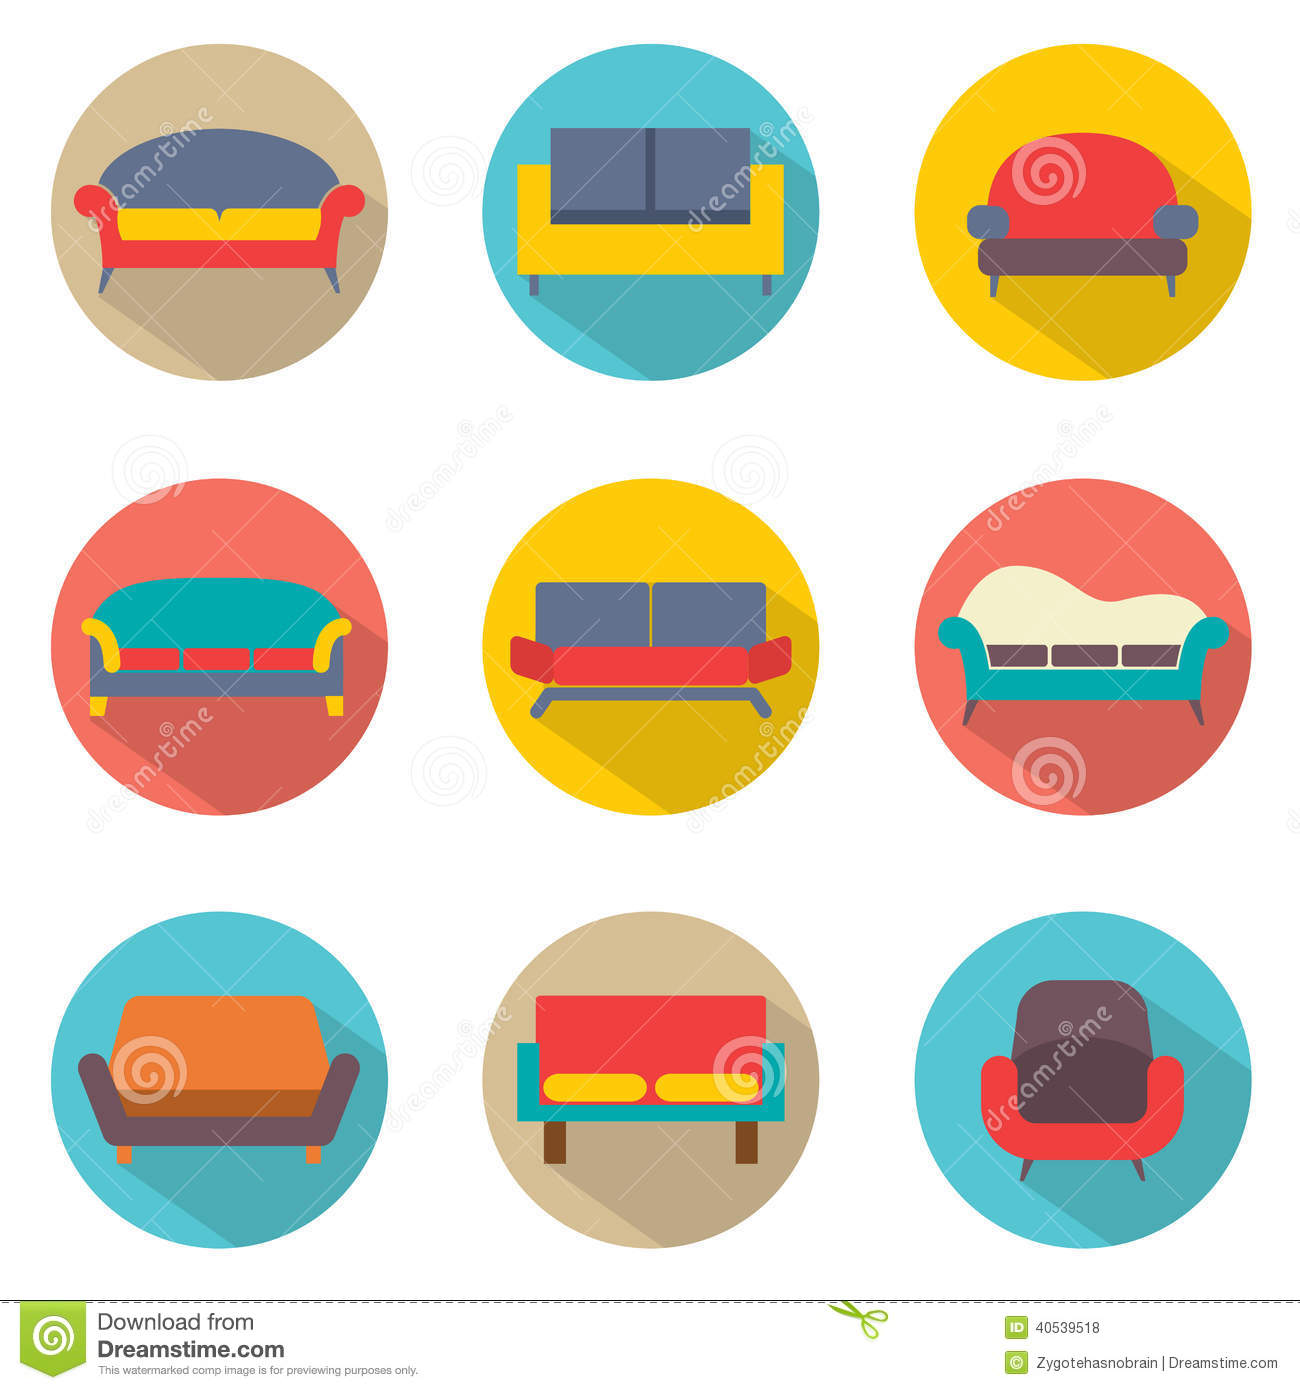 Flat Design Sofa Icons Stock Vector. Illustration Of Style